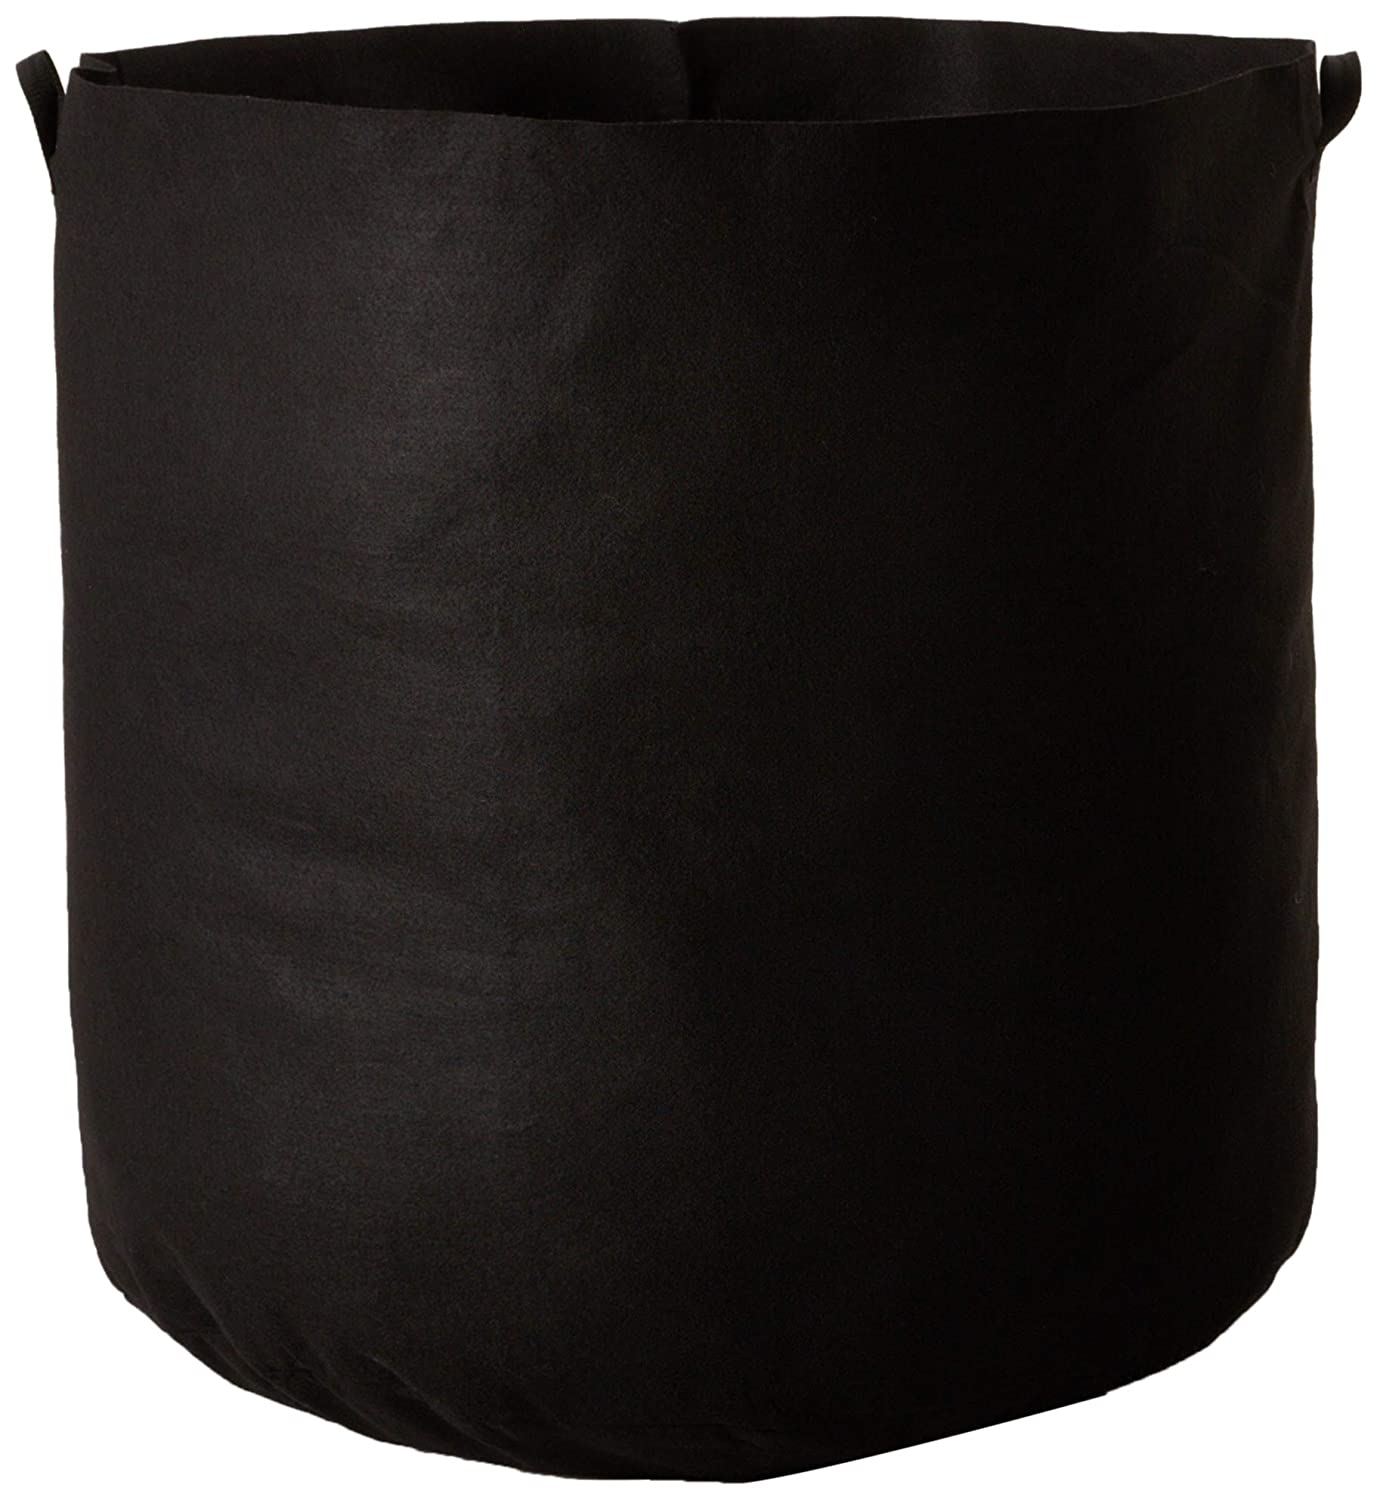 Hydro Crunch 100 Gallons Grow Bag Fabric Aeration Pots Container with Strap Handles, Black